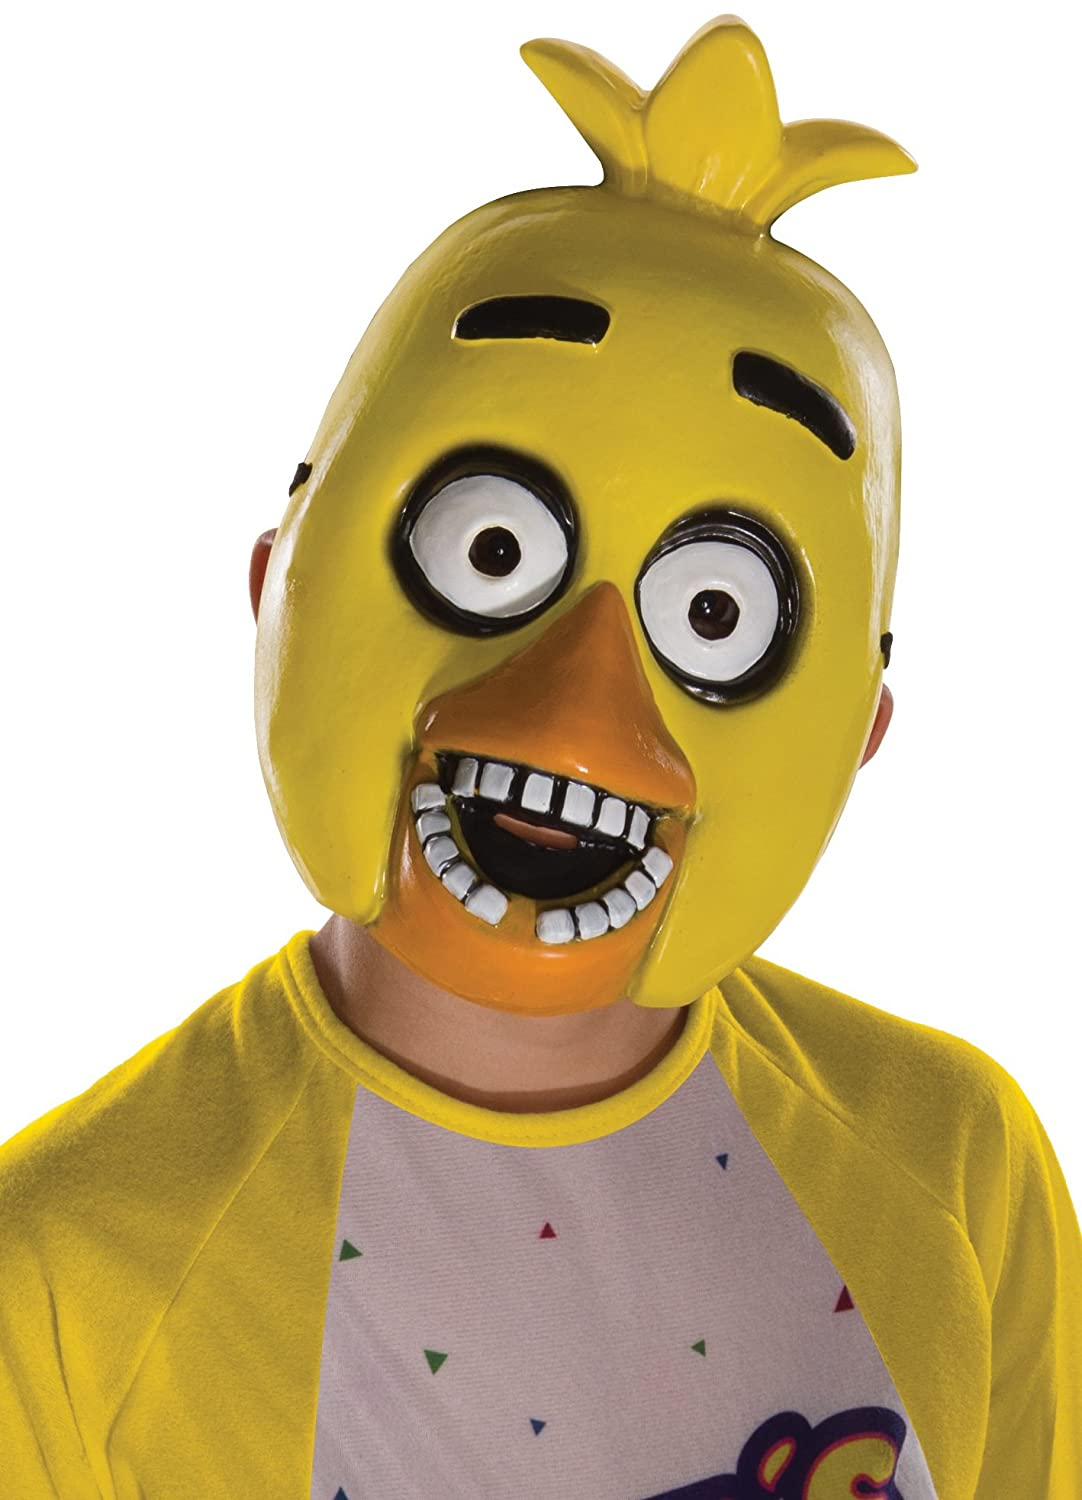 Amazon.com Five Nights at Freddyu0027s Chica Childu0027s Half Mask Toys u0026 Games  sc 1 st  Amazon.com : kids freddy costume  - Germanpascual.Com